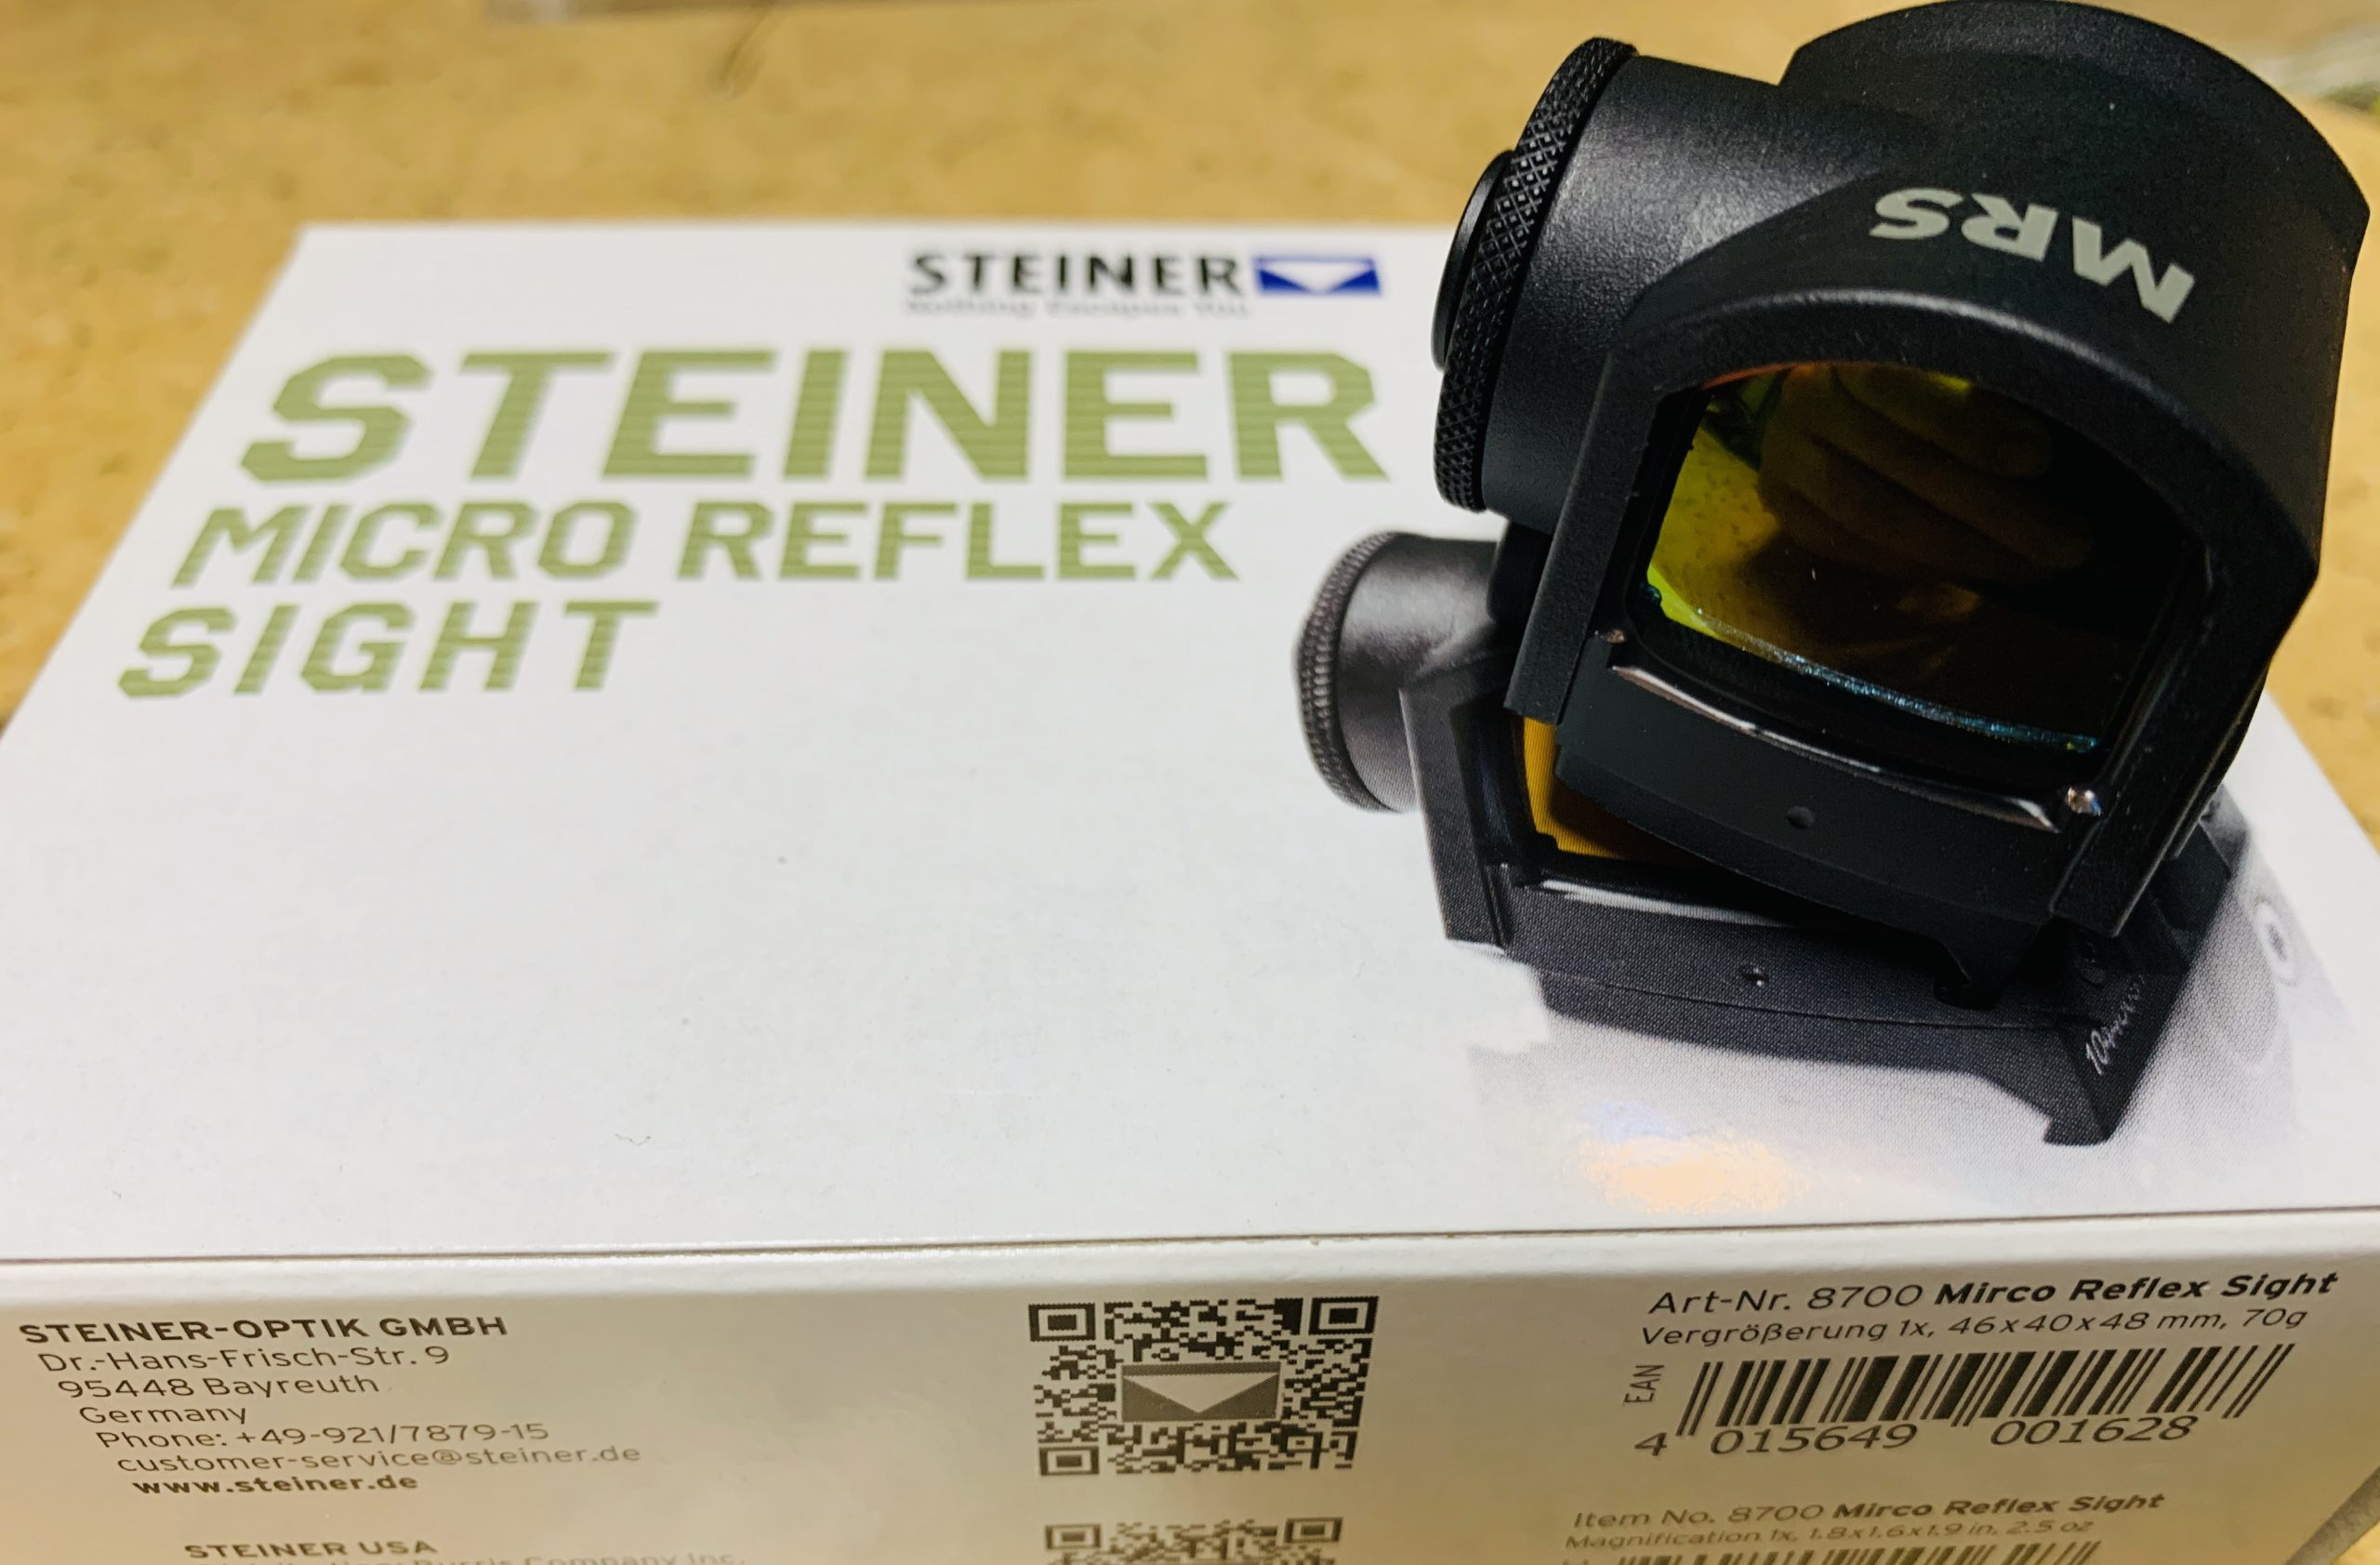 Steiner MRS Micro Reflex Sight 3 MOA red dot